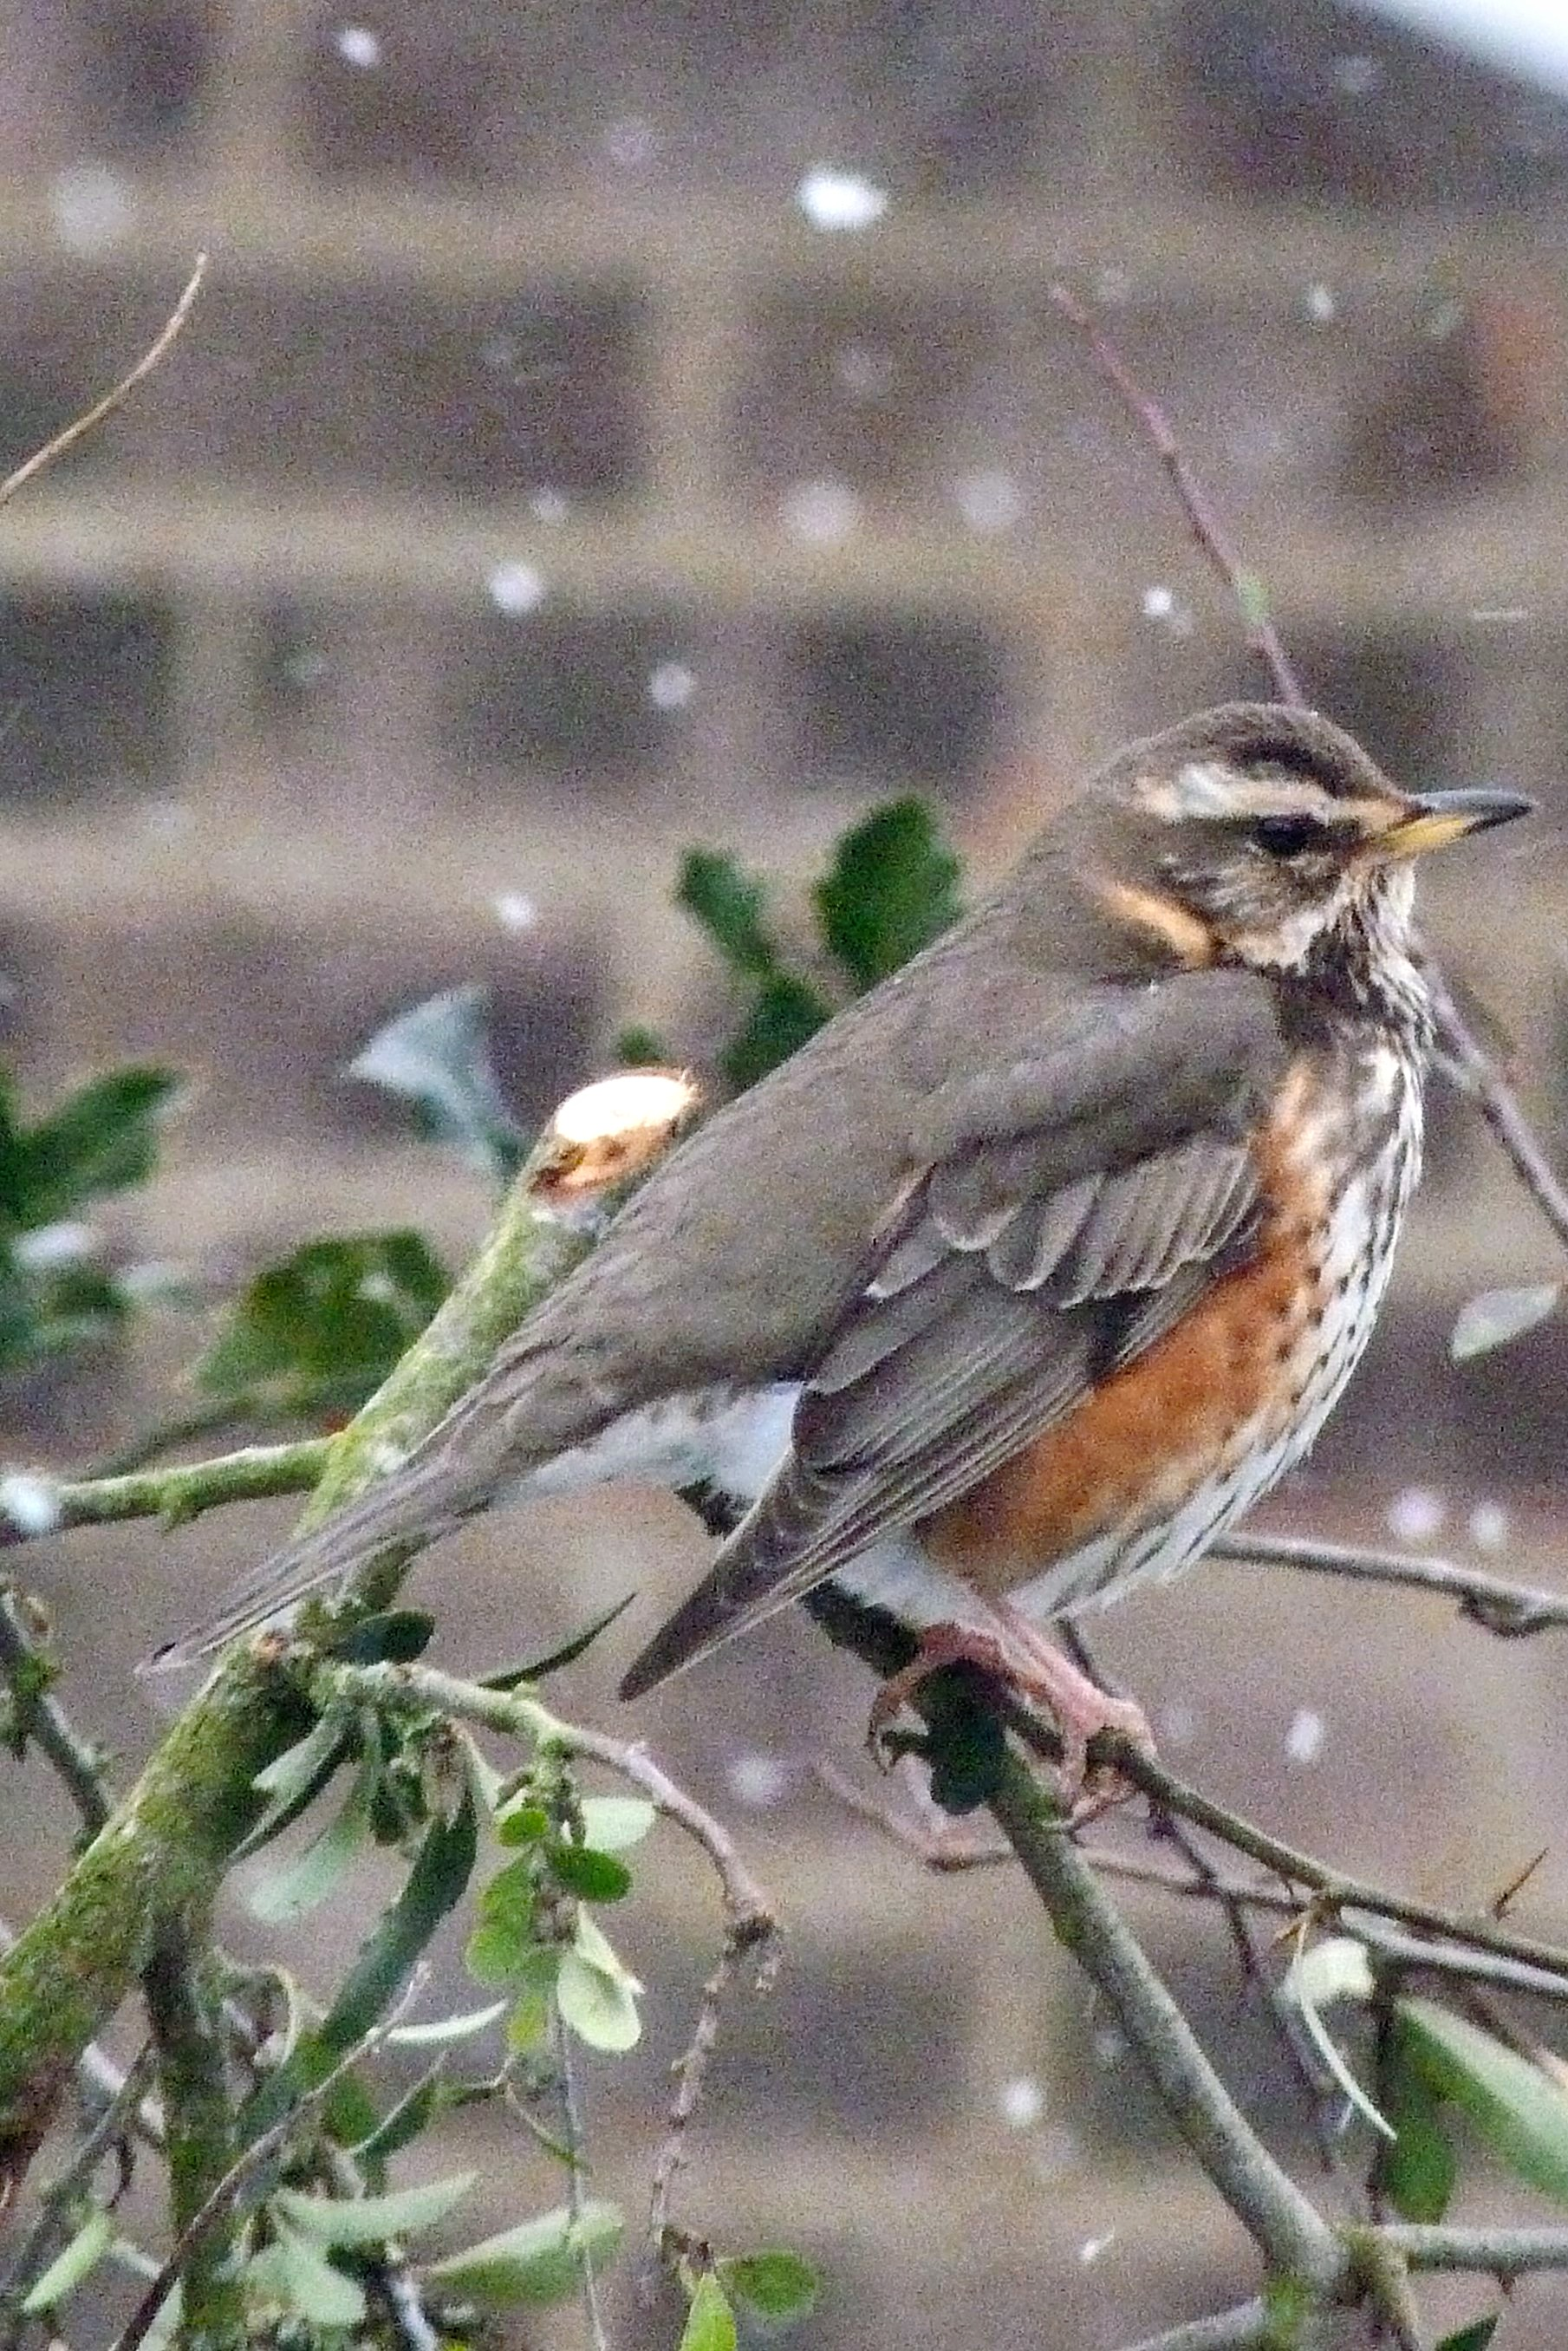 REDWING IN THE SNOW